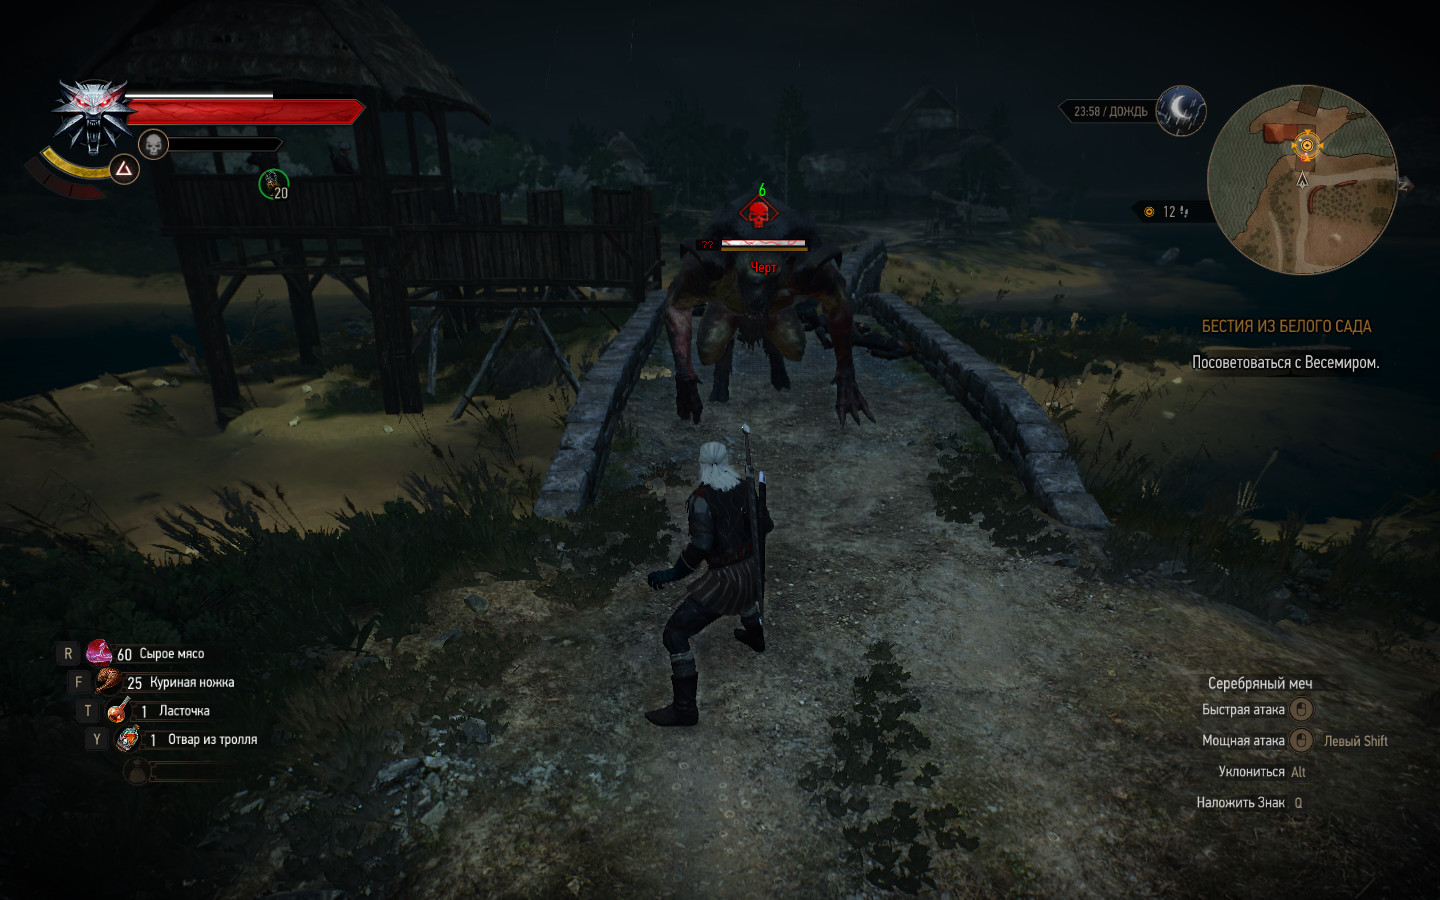 ЧОРТ - Witcher 3: Wild Hunt, the